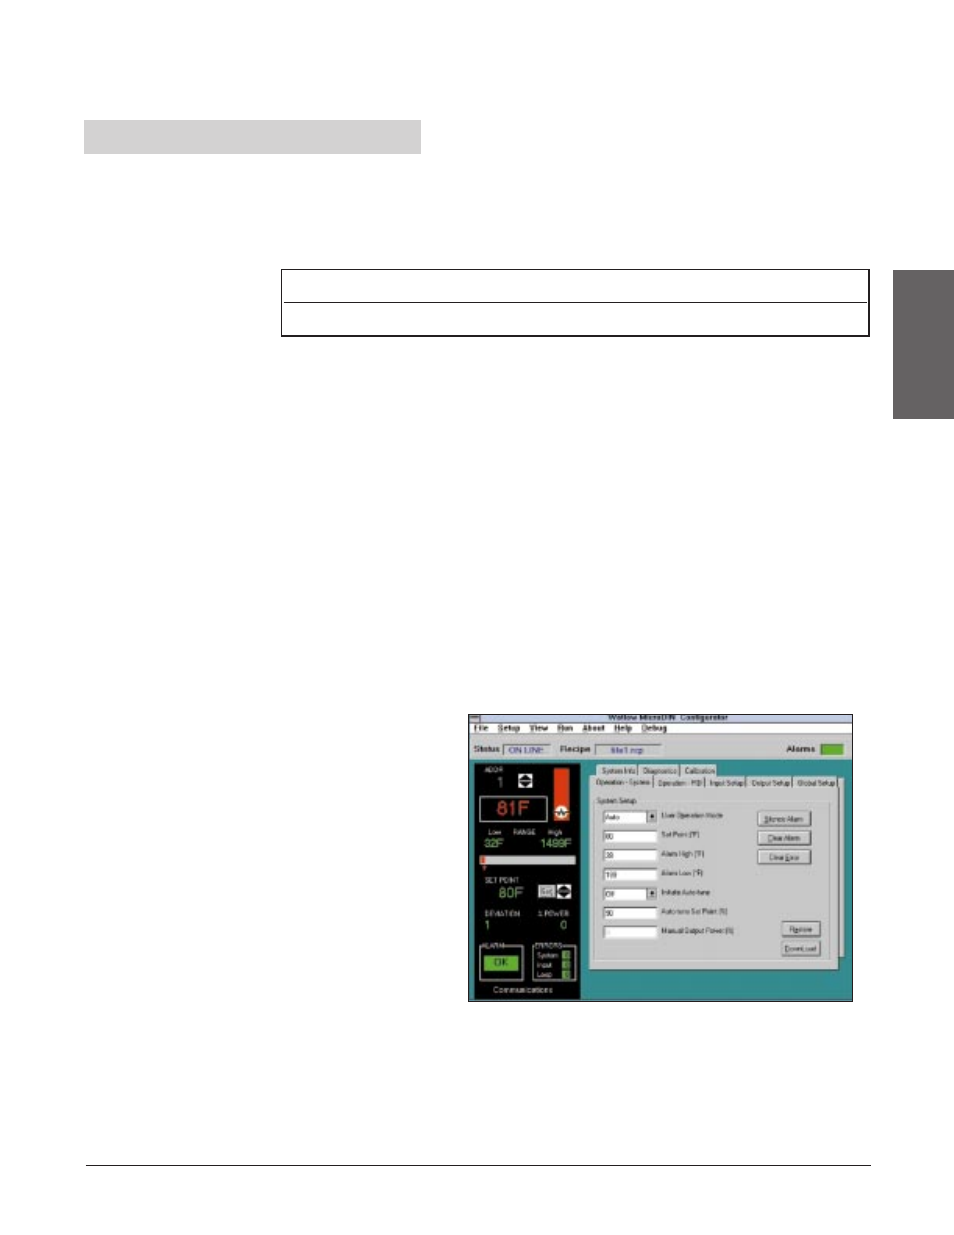 Serial Data Format Microdin Installation Wiring Tasks Modbus Rtu Communications Software Watlink Watlow User Manual Page 19 106